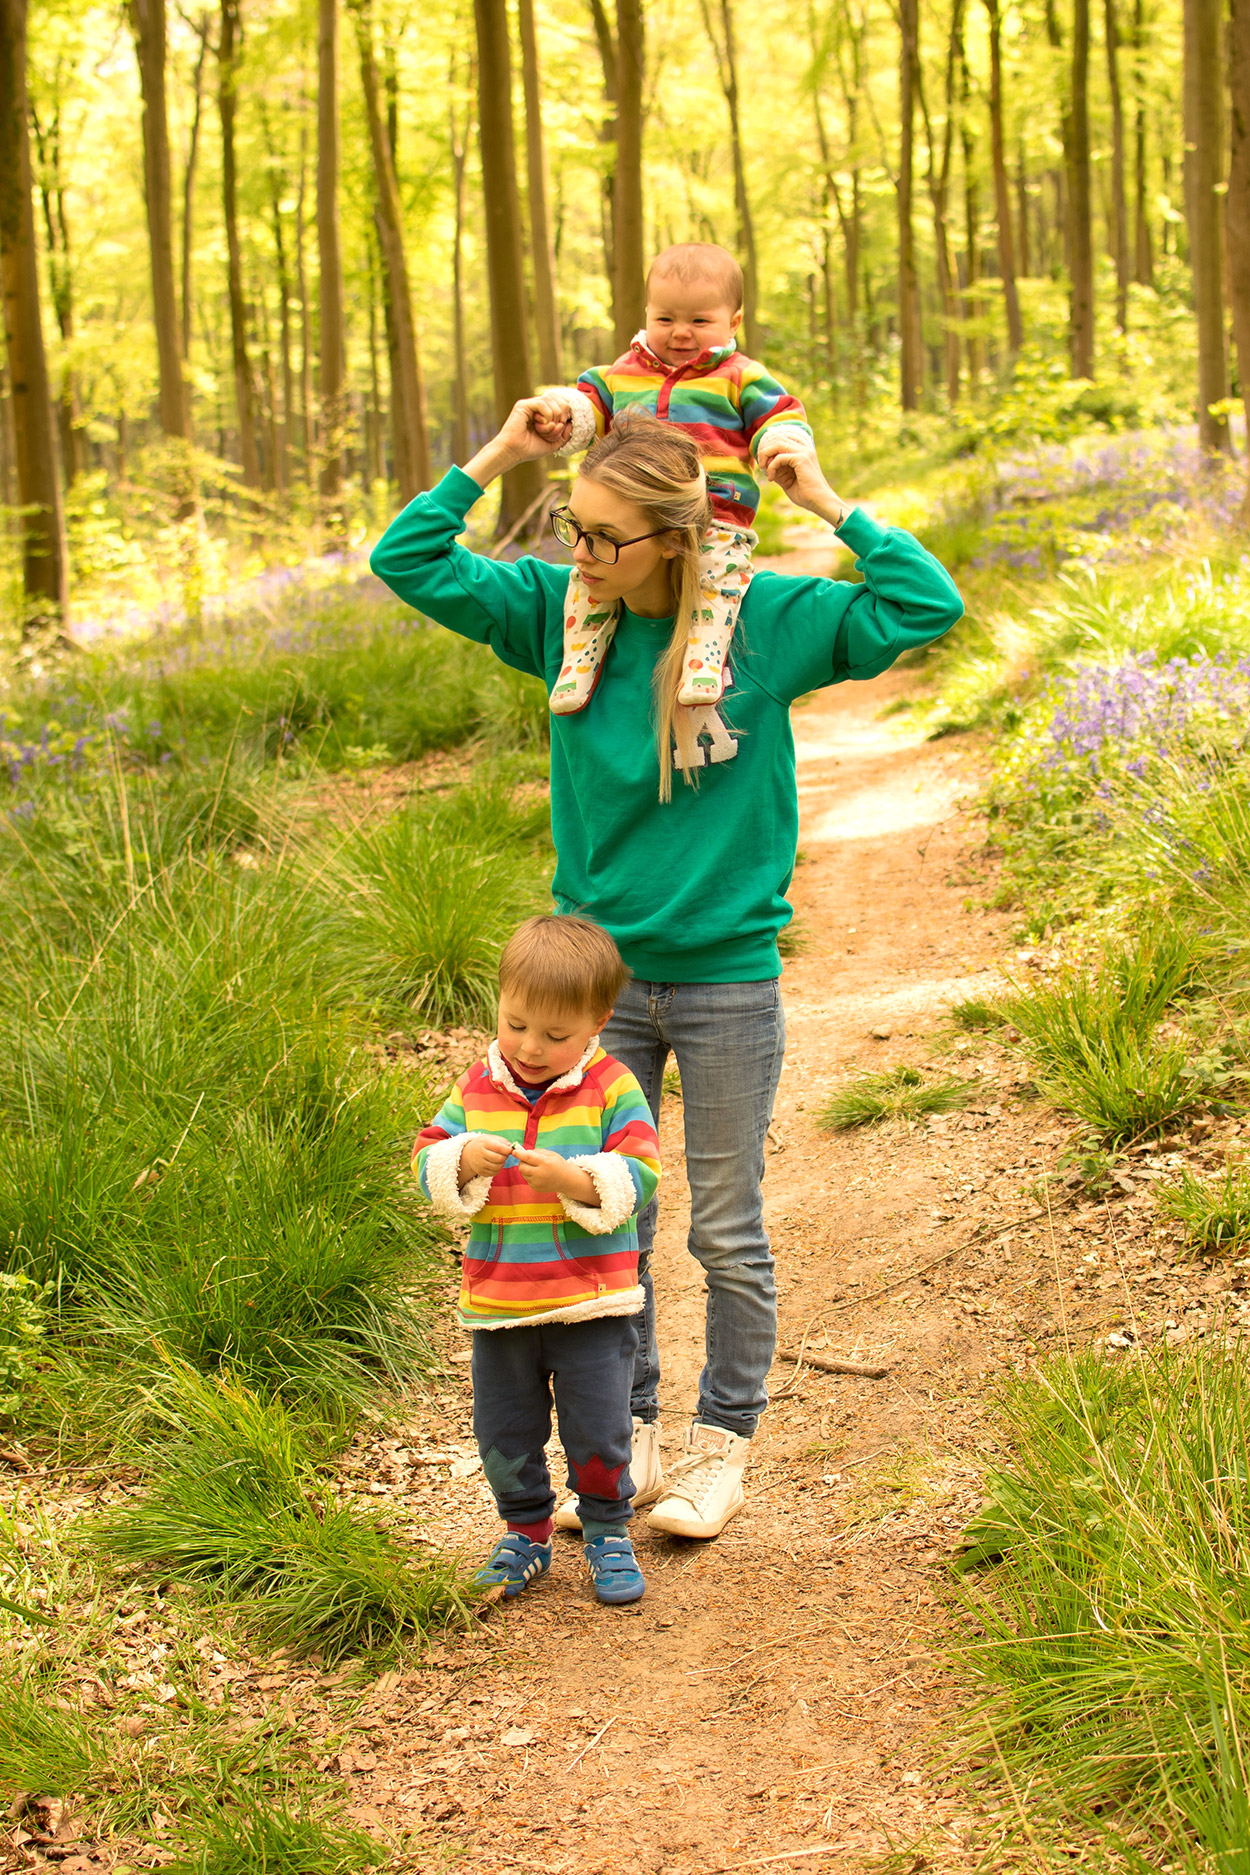 The BiBs and Us - Mother and baby son cuddling outside among the bluebells wearing Urban Outfitters 'K' sweatshirt and Frugi rainbow snuggle fleece with Little Green Radicals house sleepsuit